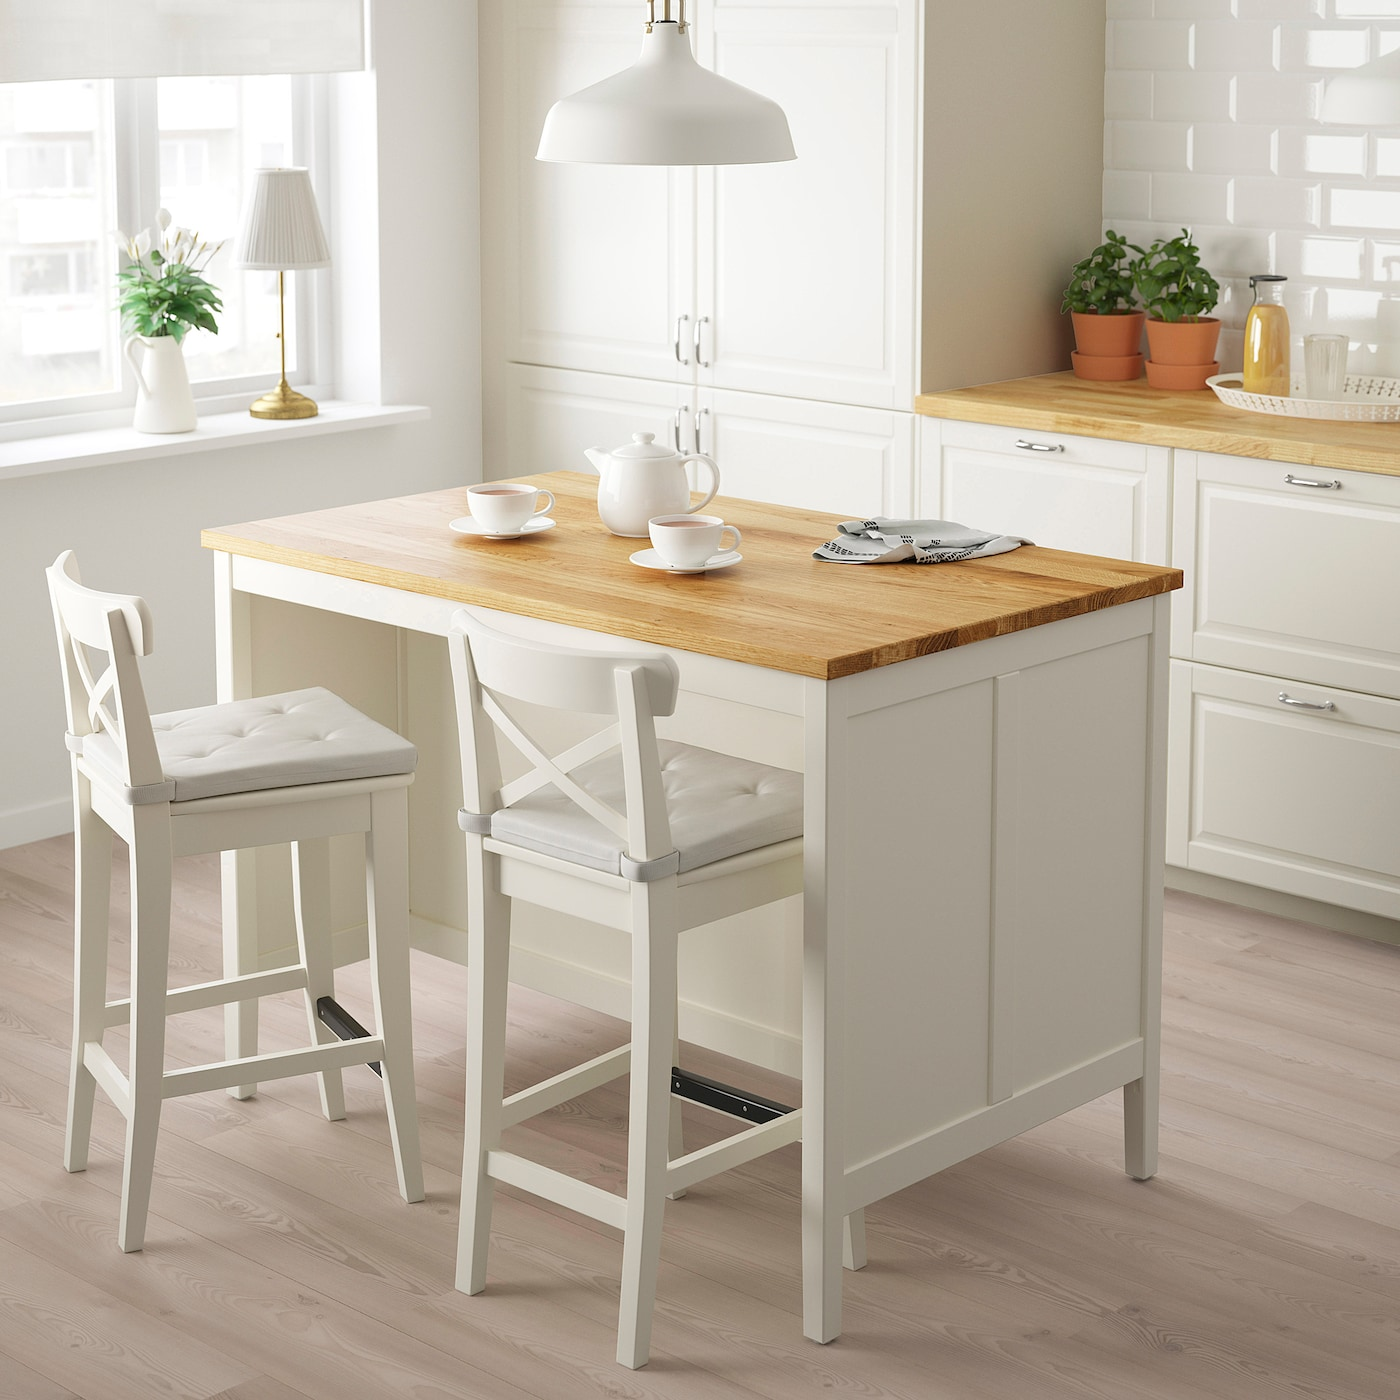 TORNVIKEN Kitchen island - off-white/oak 8x8 cm